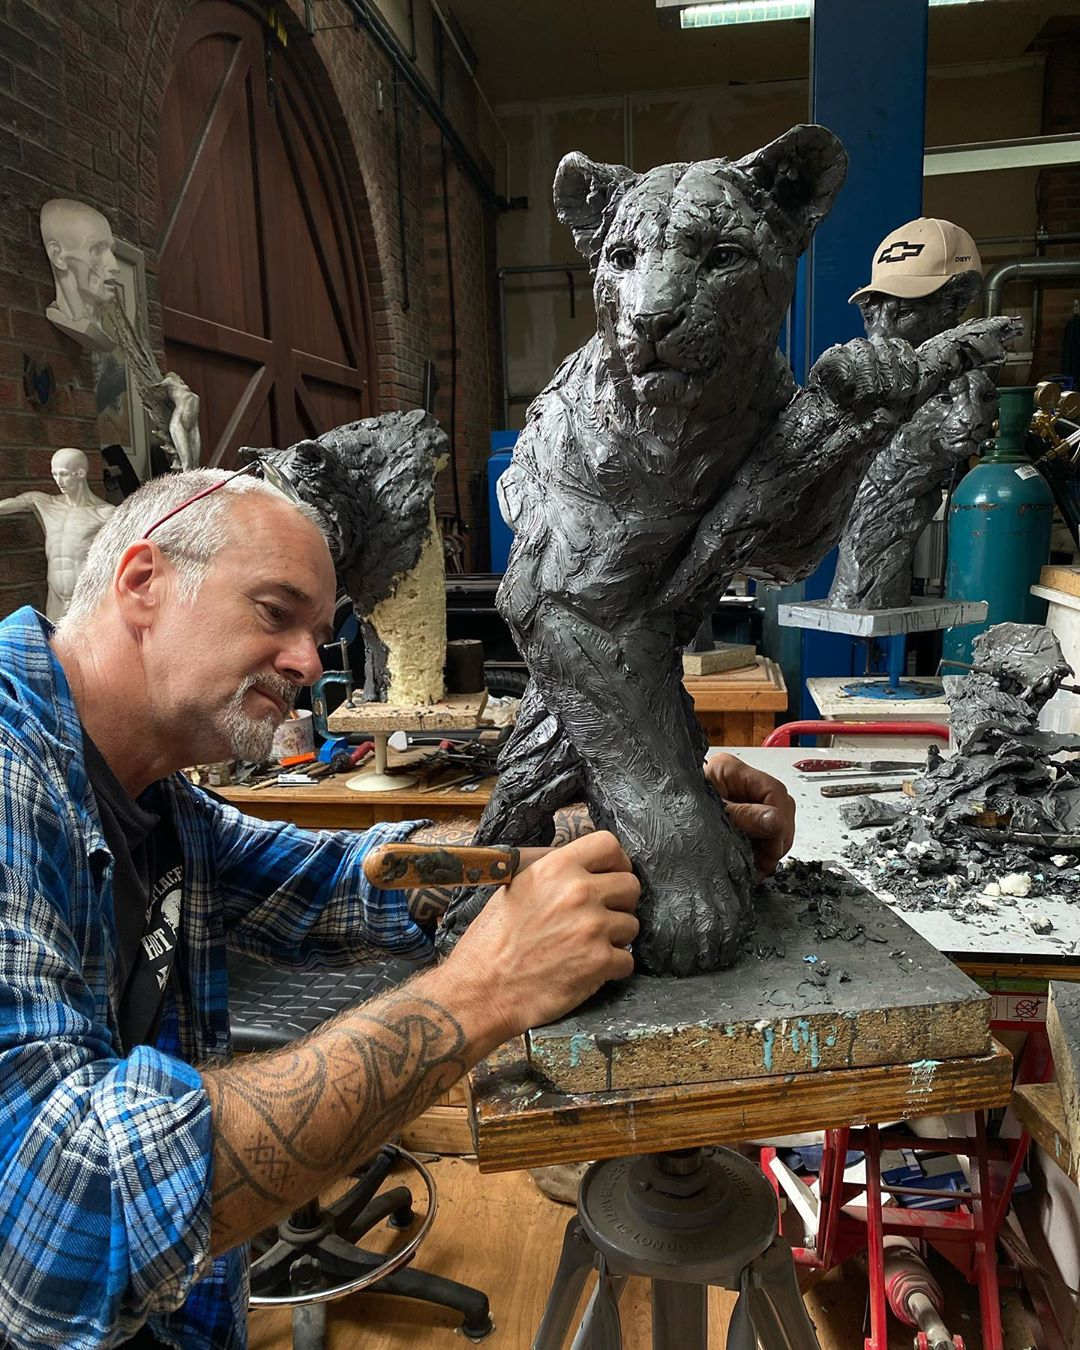 Self-Taught Sculptor Gains World Recognition For Stunning Bronze Sculptures 8